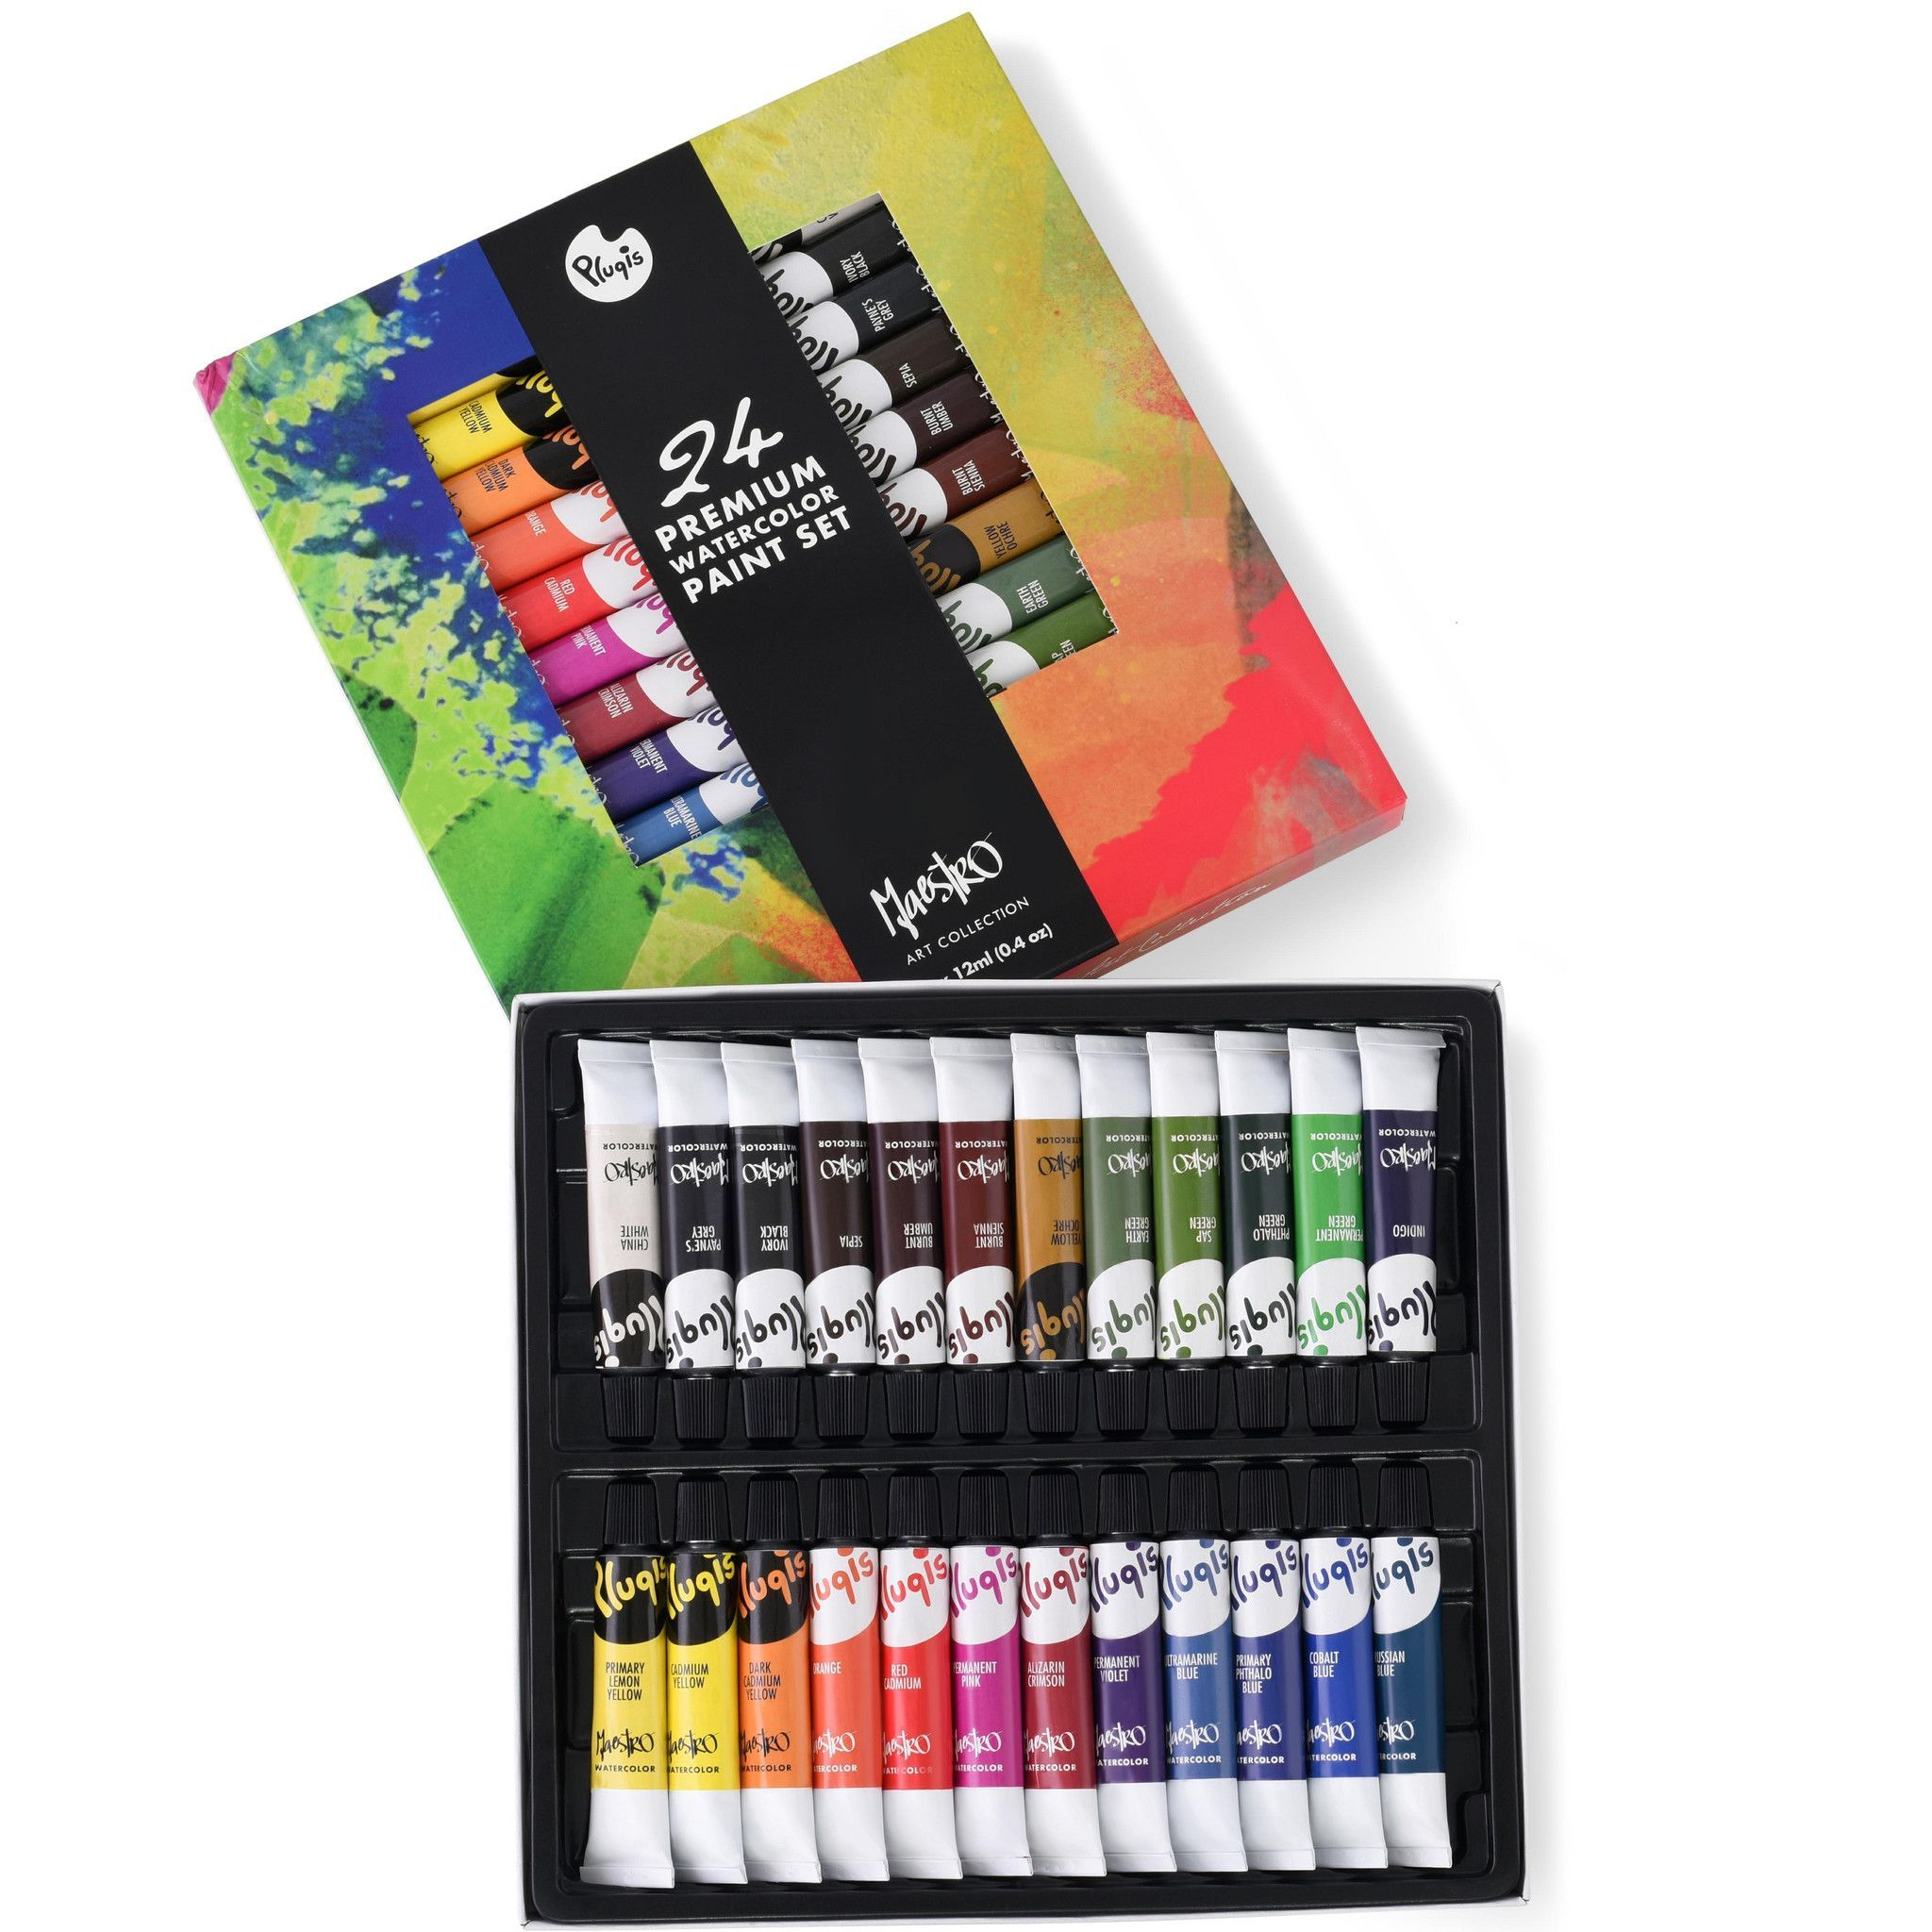 Product Description Pluqis Watercolor Paint Sets Are Known To